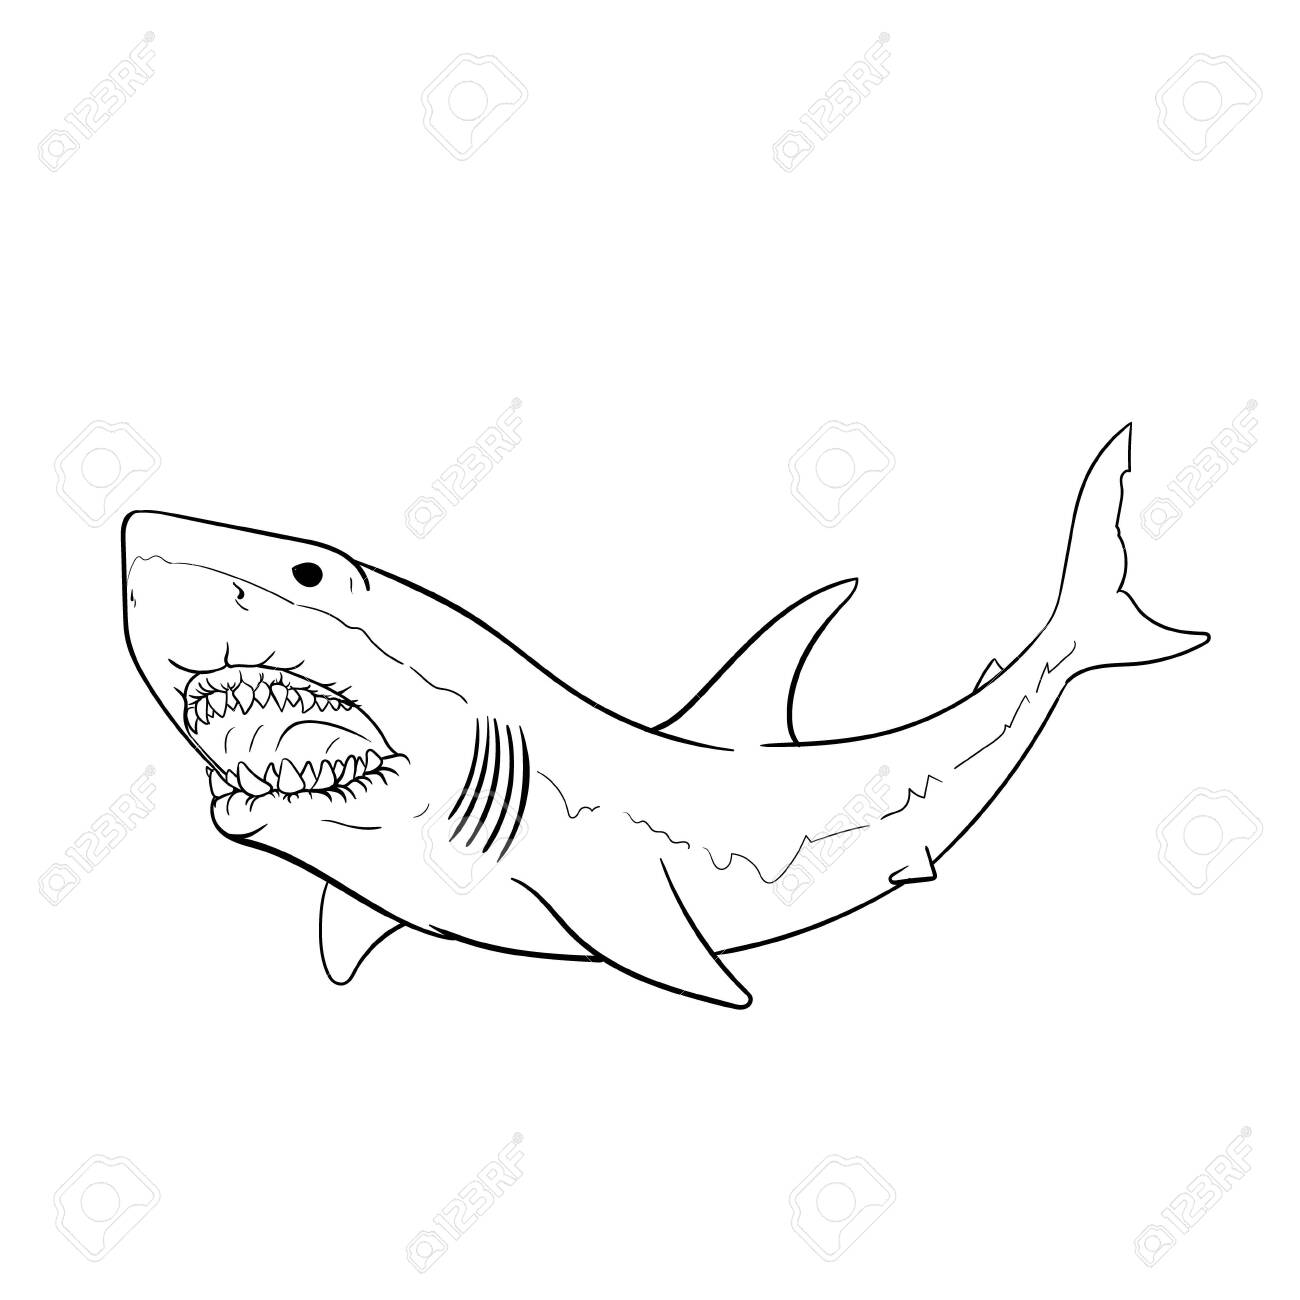 Great White Shark Hand Drawing Vintage Engraving Illustration Royalty Free Cliparts Vectors And Stock Illustration Image 126140445